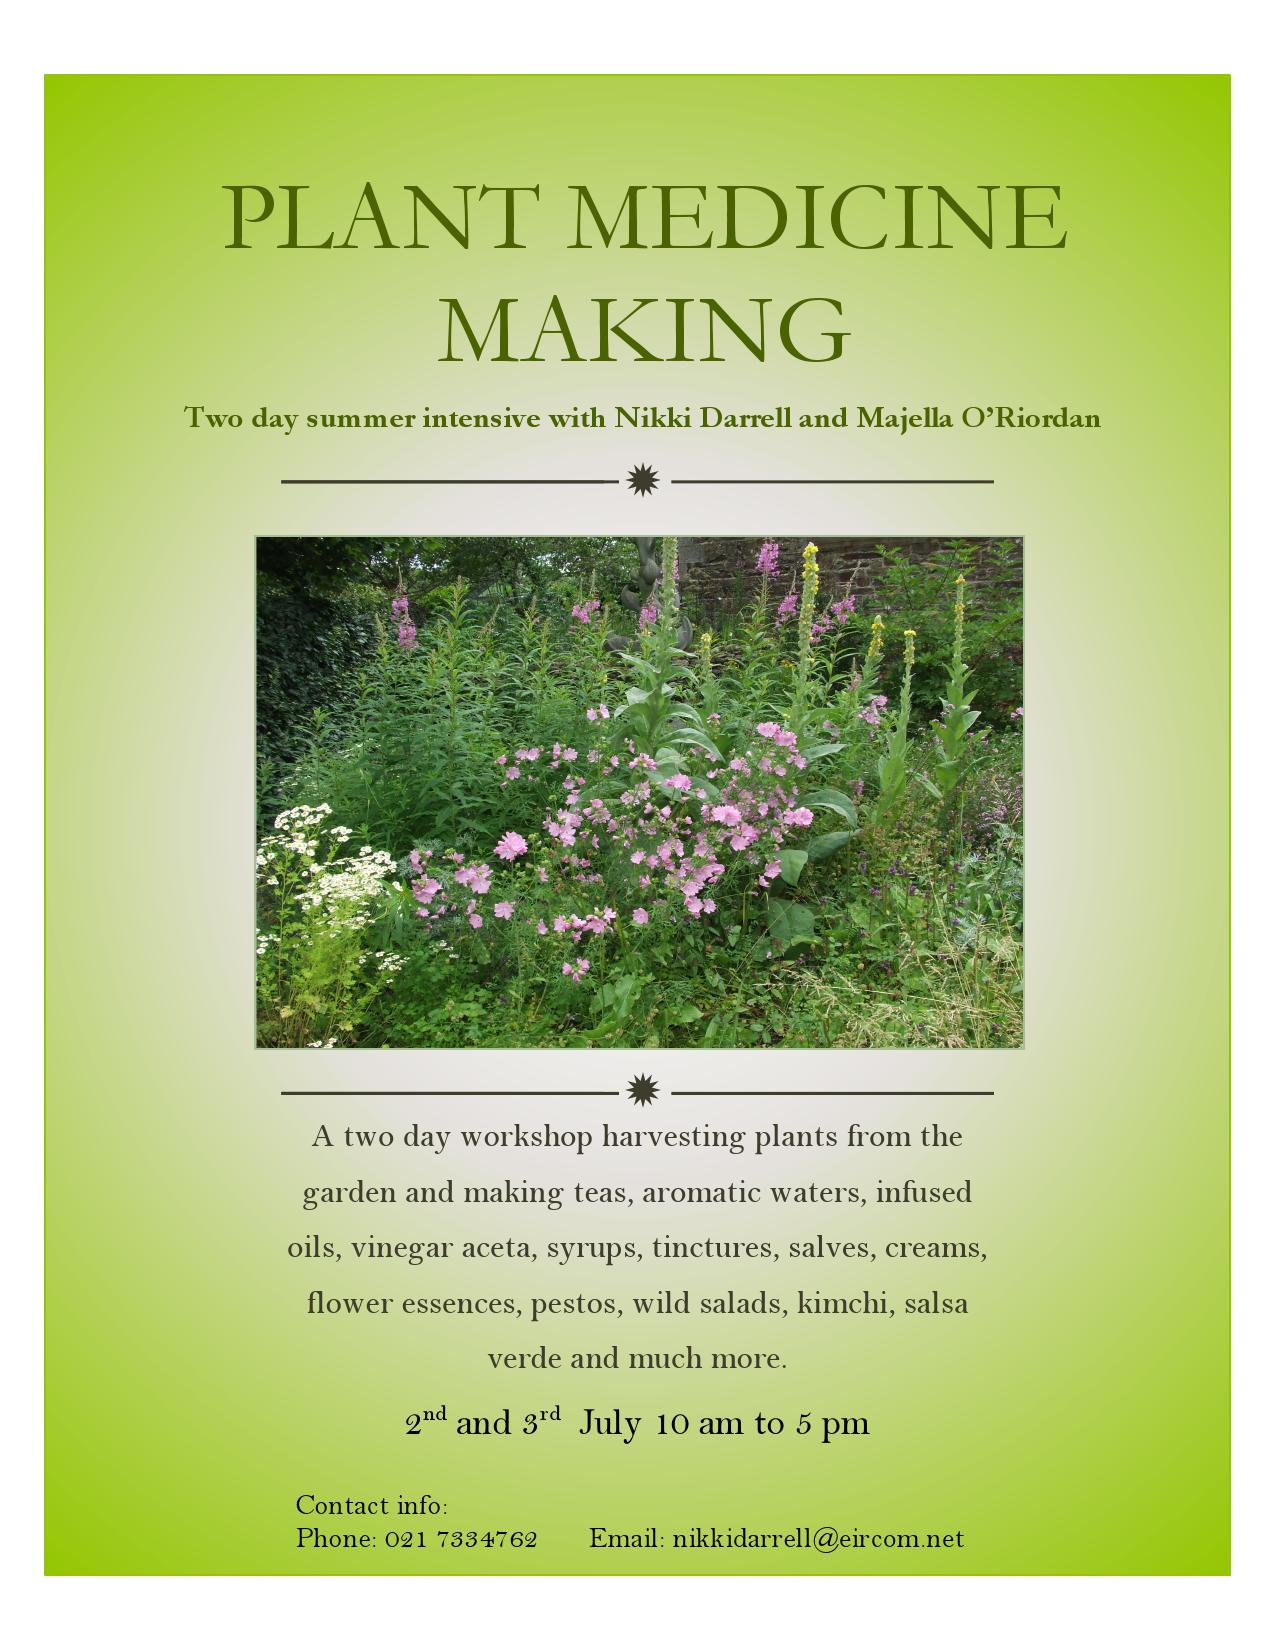 medicine making flyer pdf(1)_000001